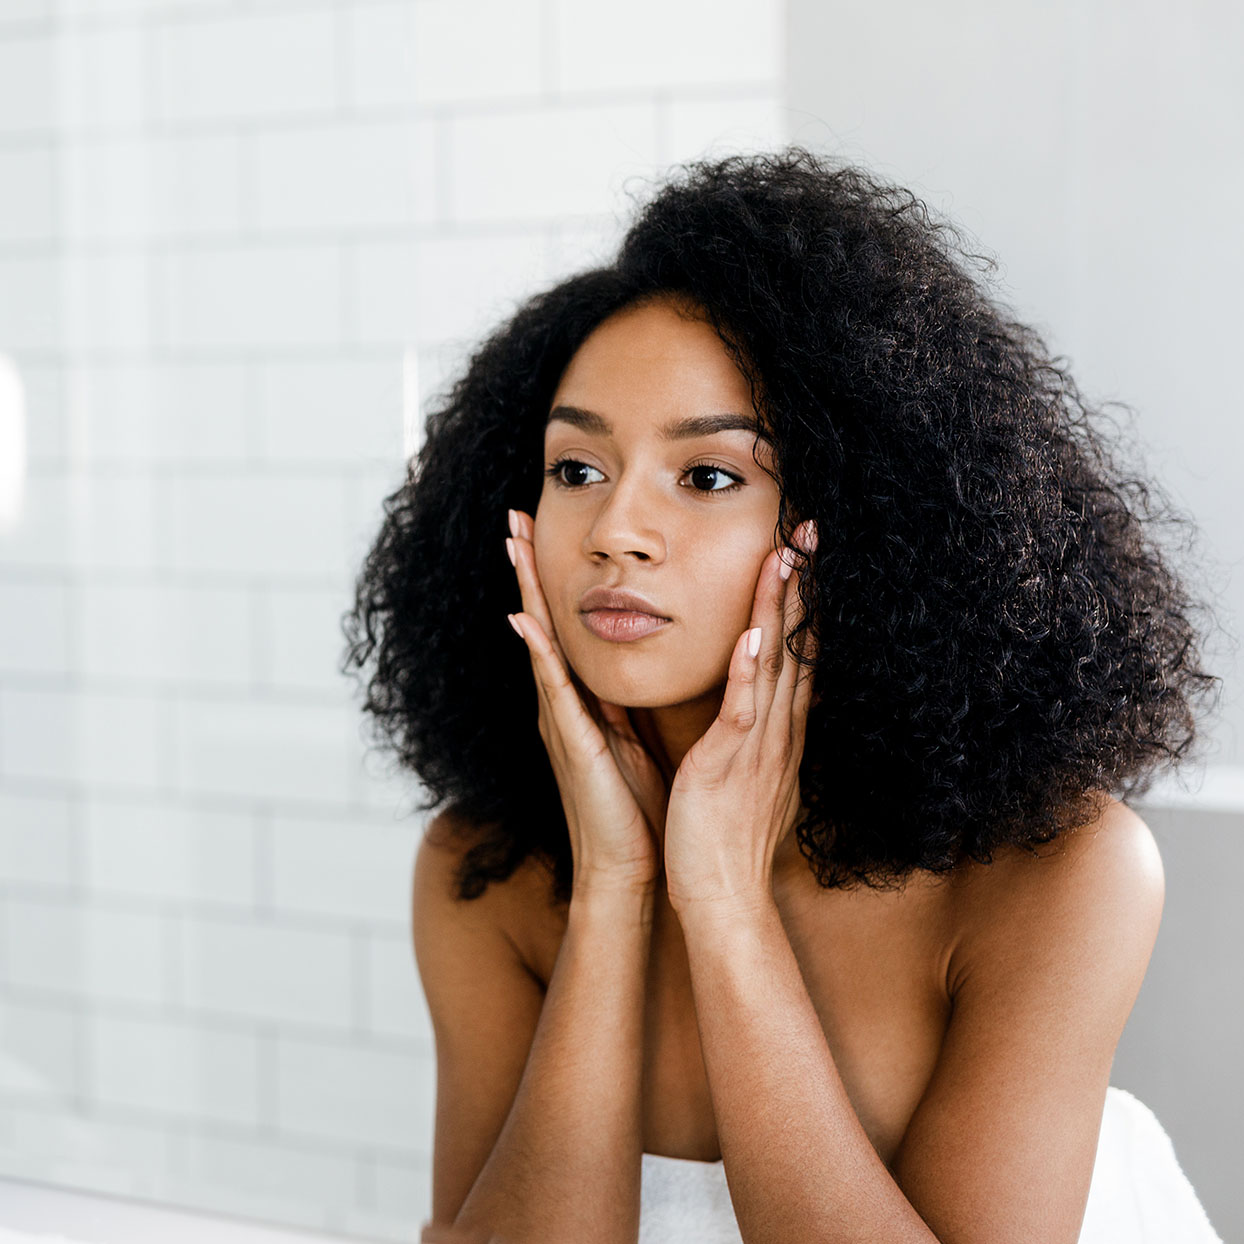 A woman smoothes her face in a mirror.